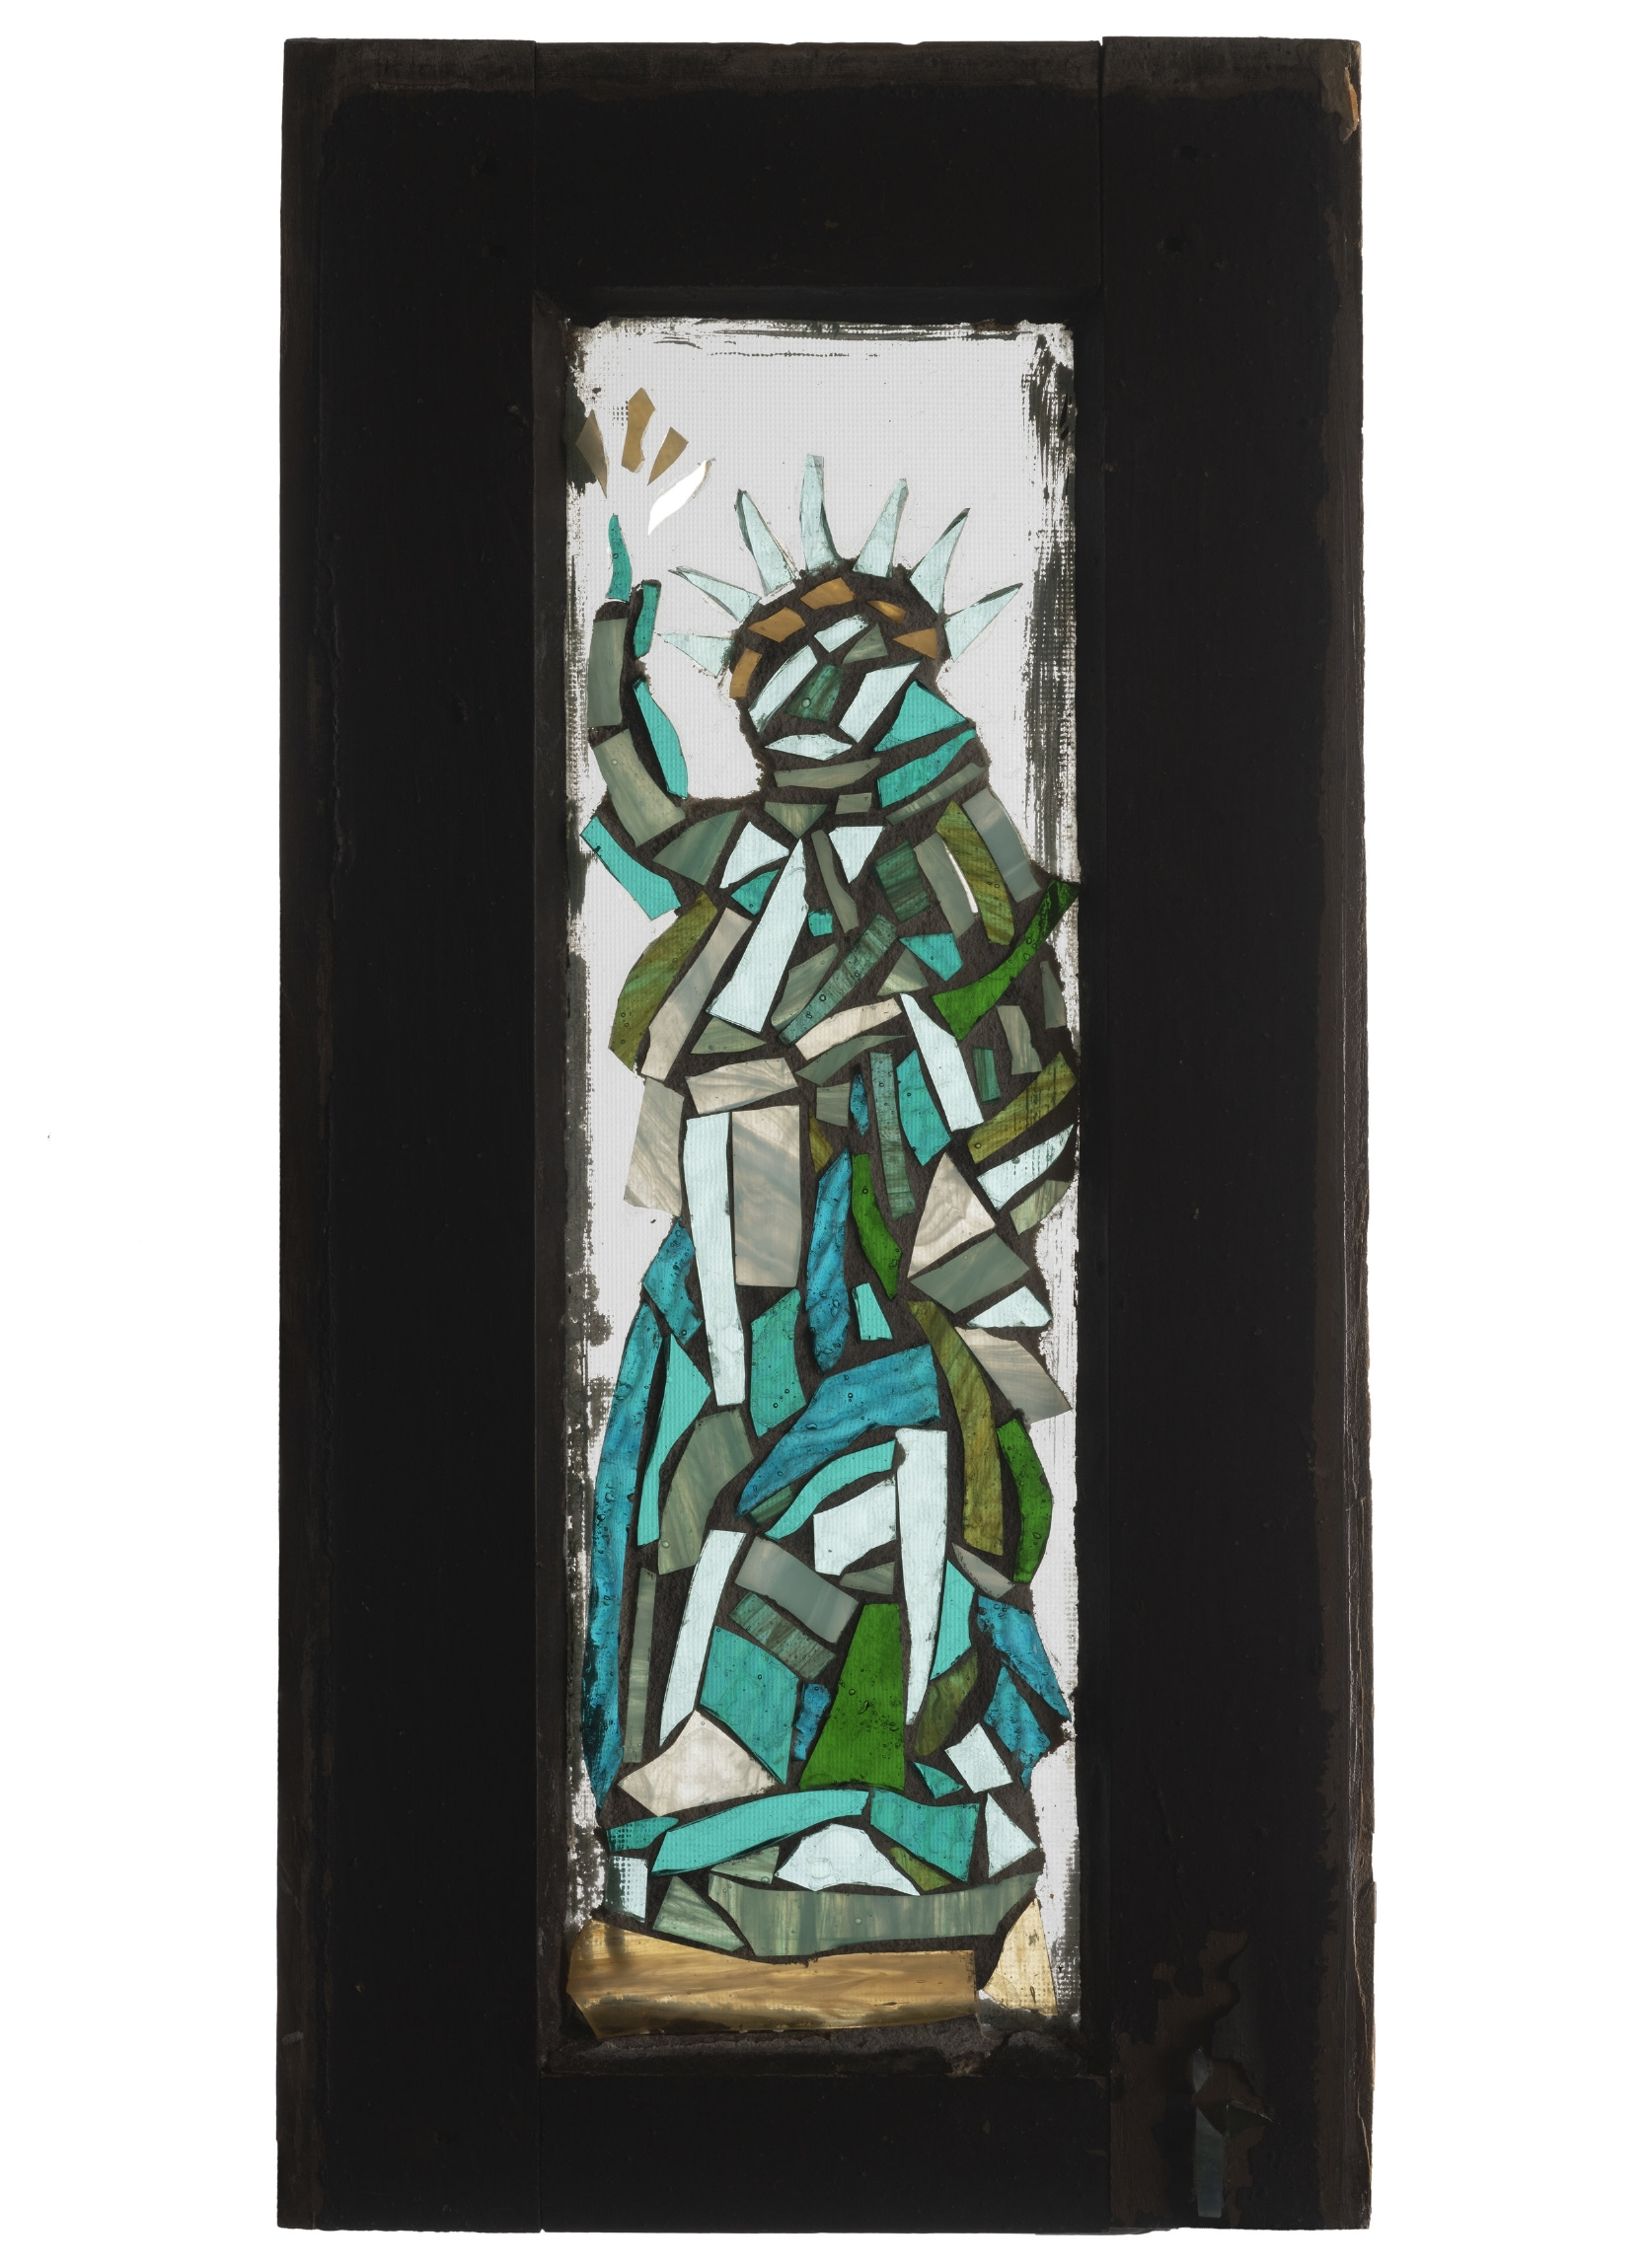 Liberty, 2001. Glass, 16 x 8 in.   Window from West 24th St., New York, NY